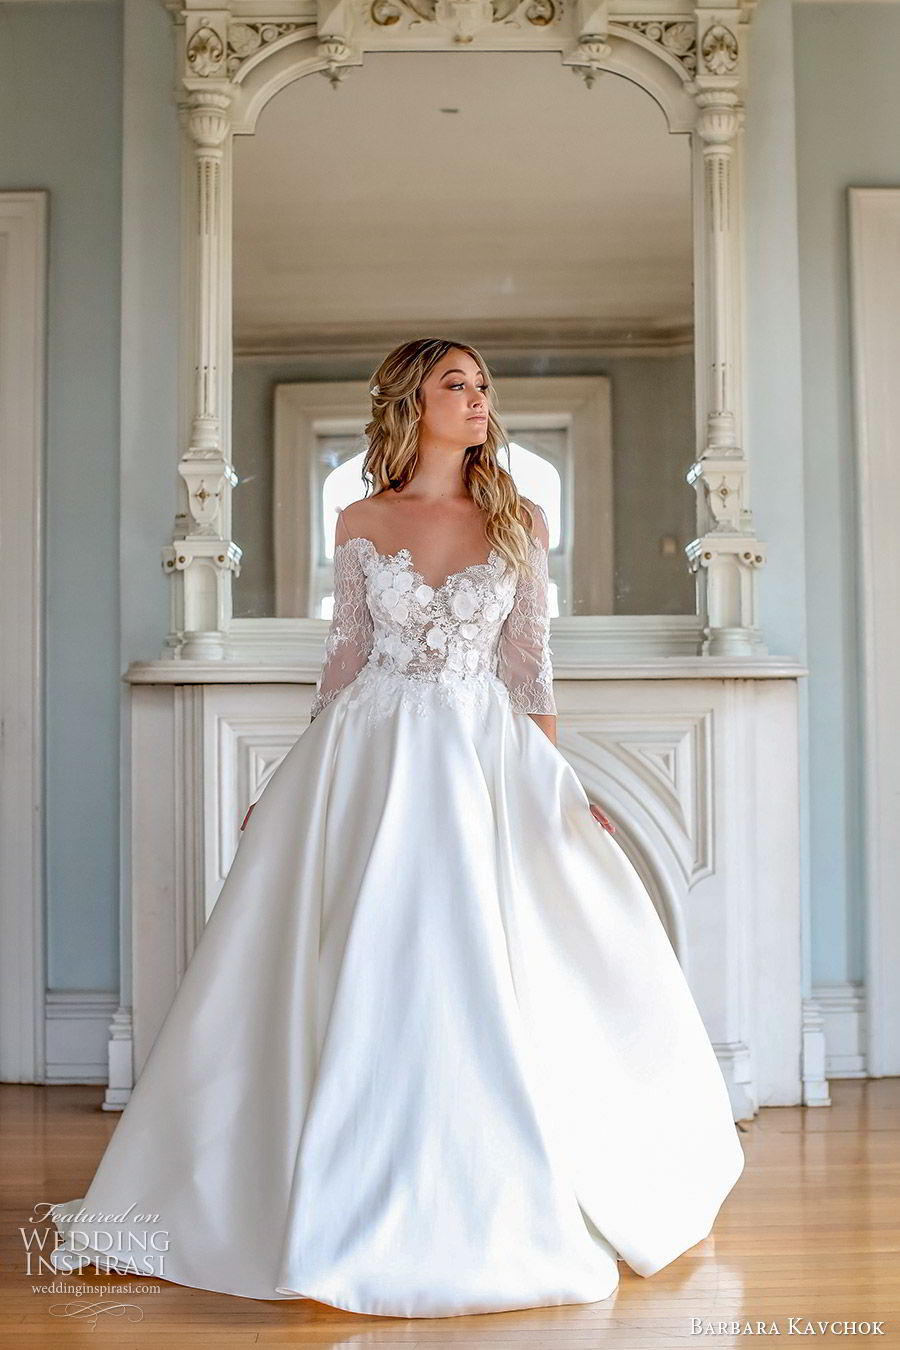 barbara kavchok fall 2019 bridal off shoulder 3 quarter sleeves sweetheart neckline illusion jewel embellished bodice a line ball gown (6) mv  chapel train elegant classic romantic